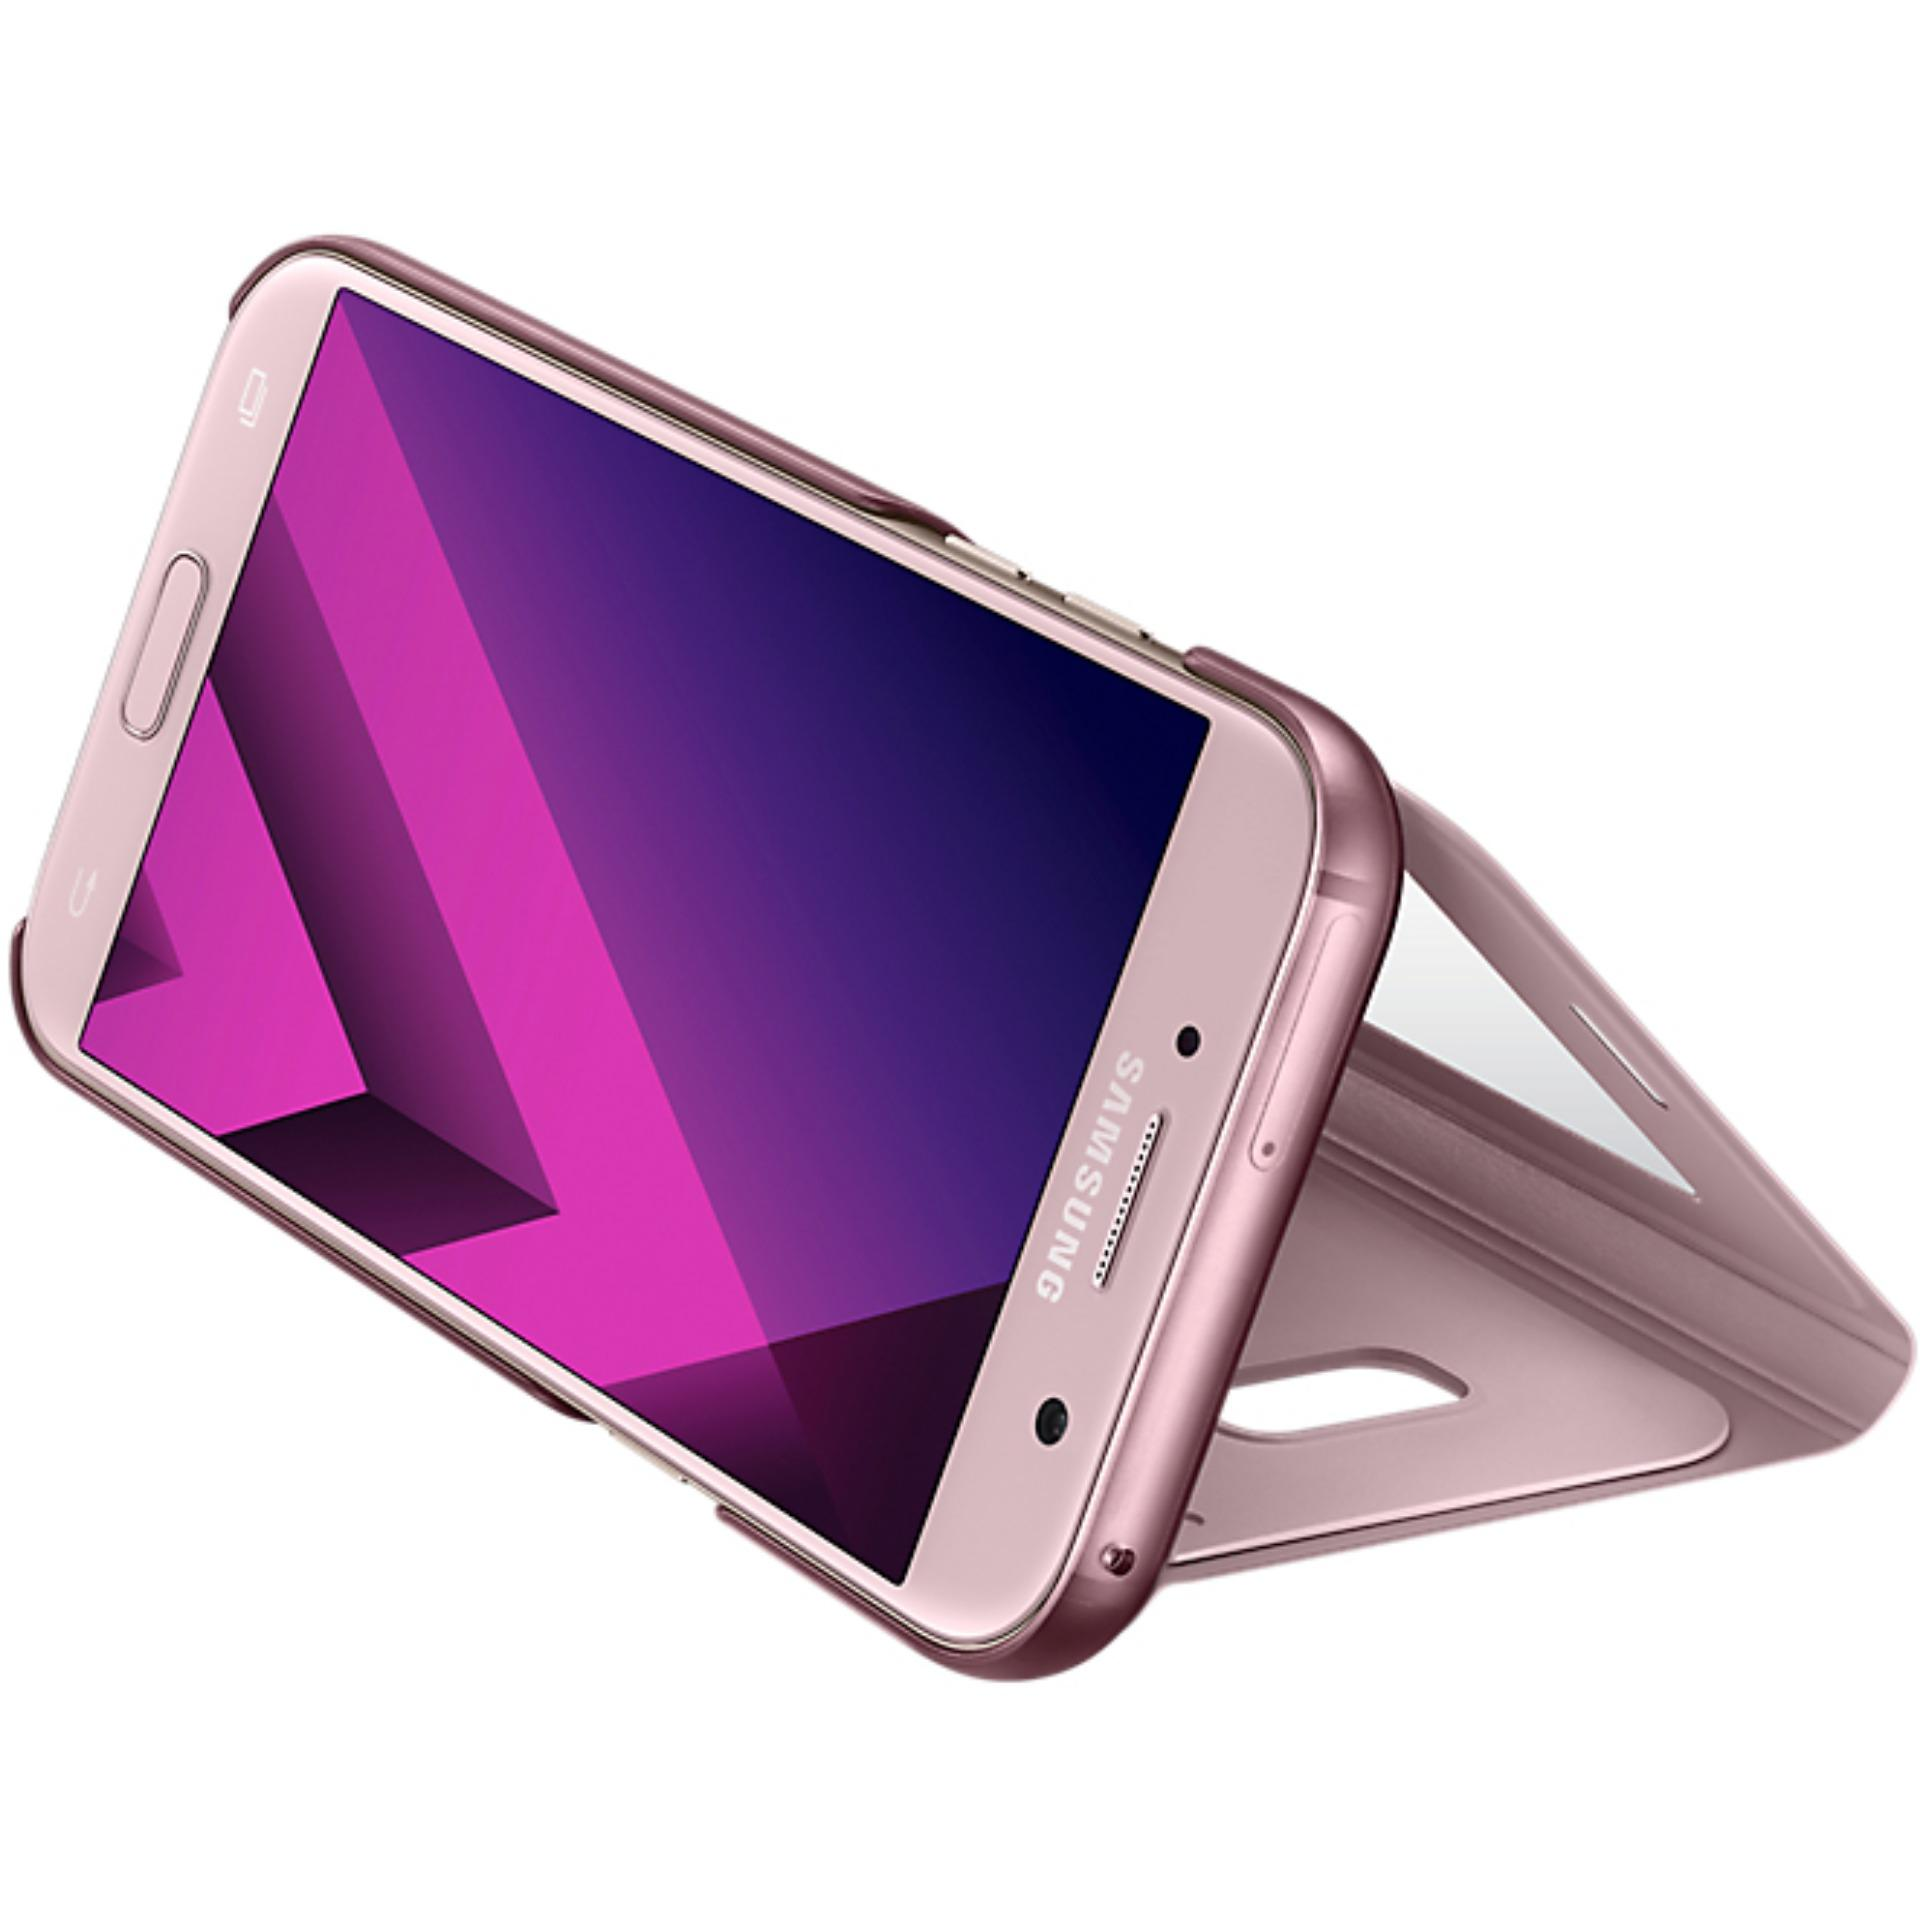 ... Samsung Original S View Standing Cover Casing for Galaxy A5 2017 ...